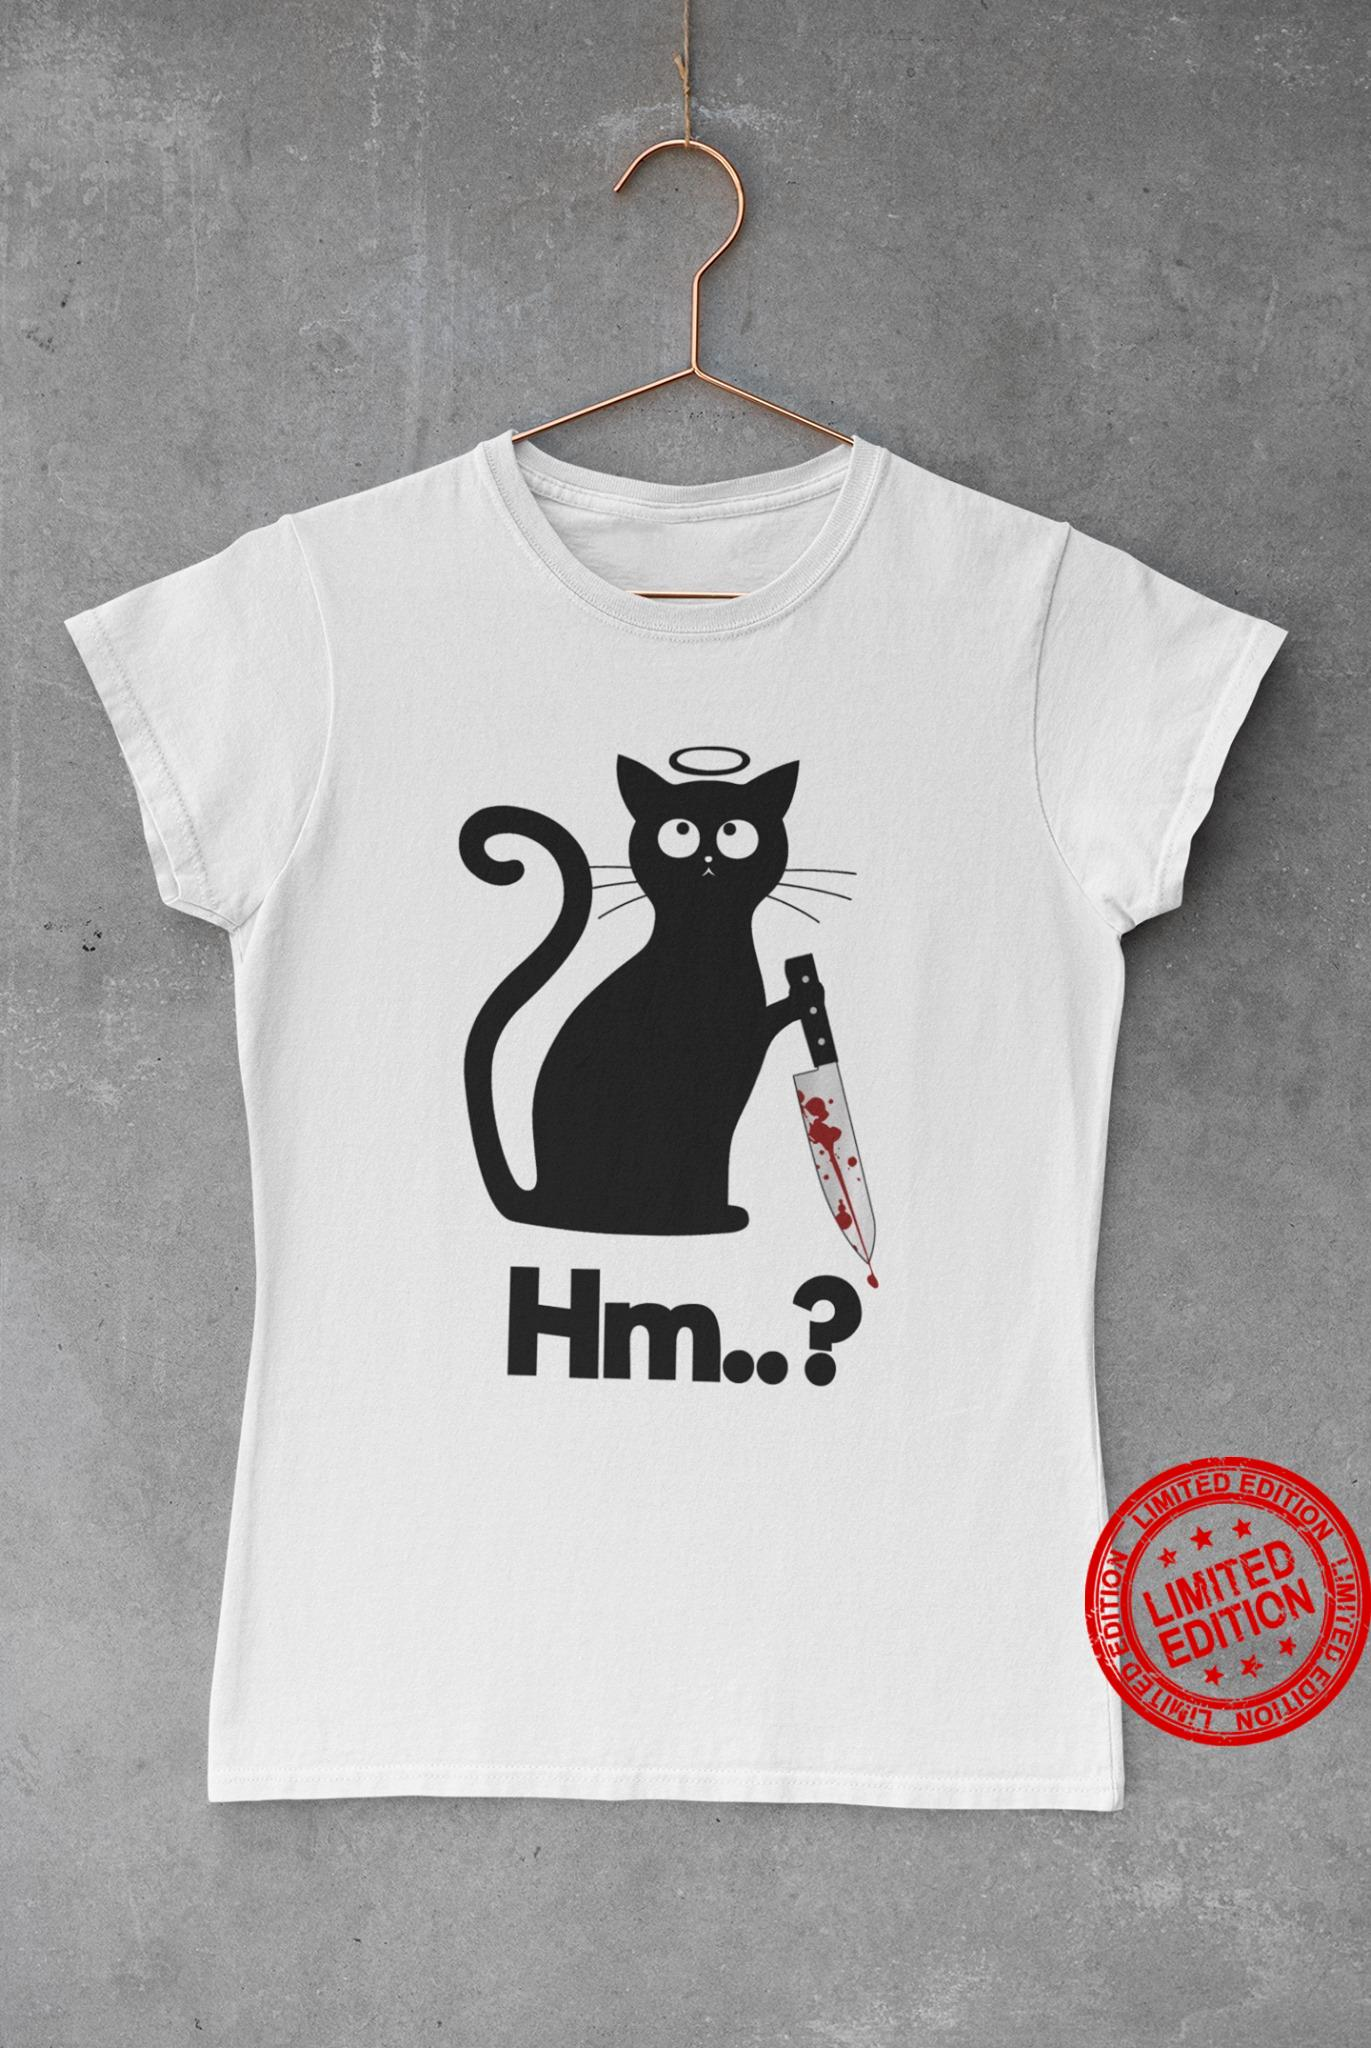 Angry Black Cat Hm.. Shirt